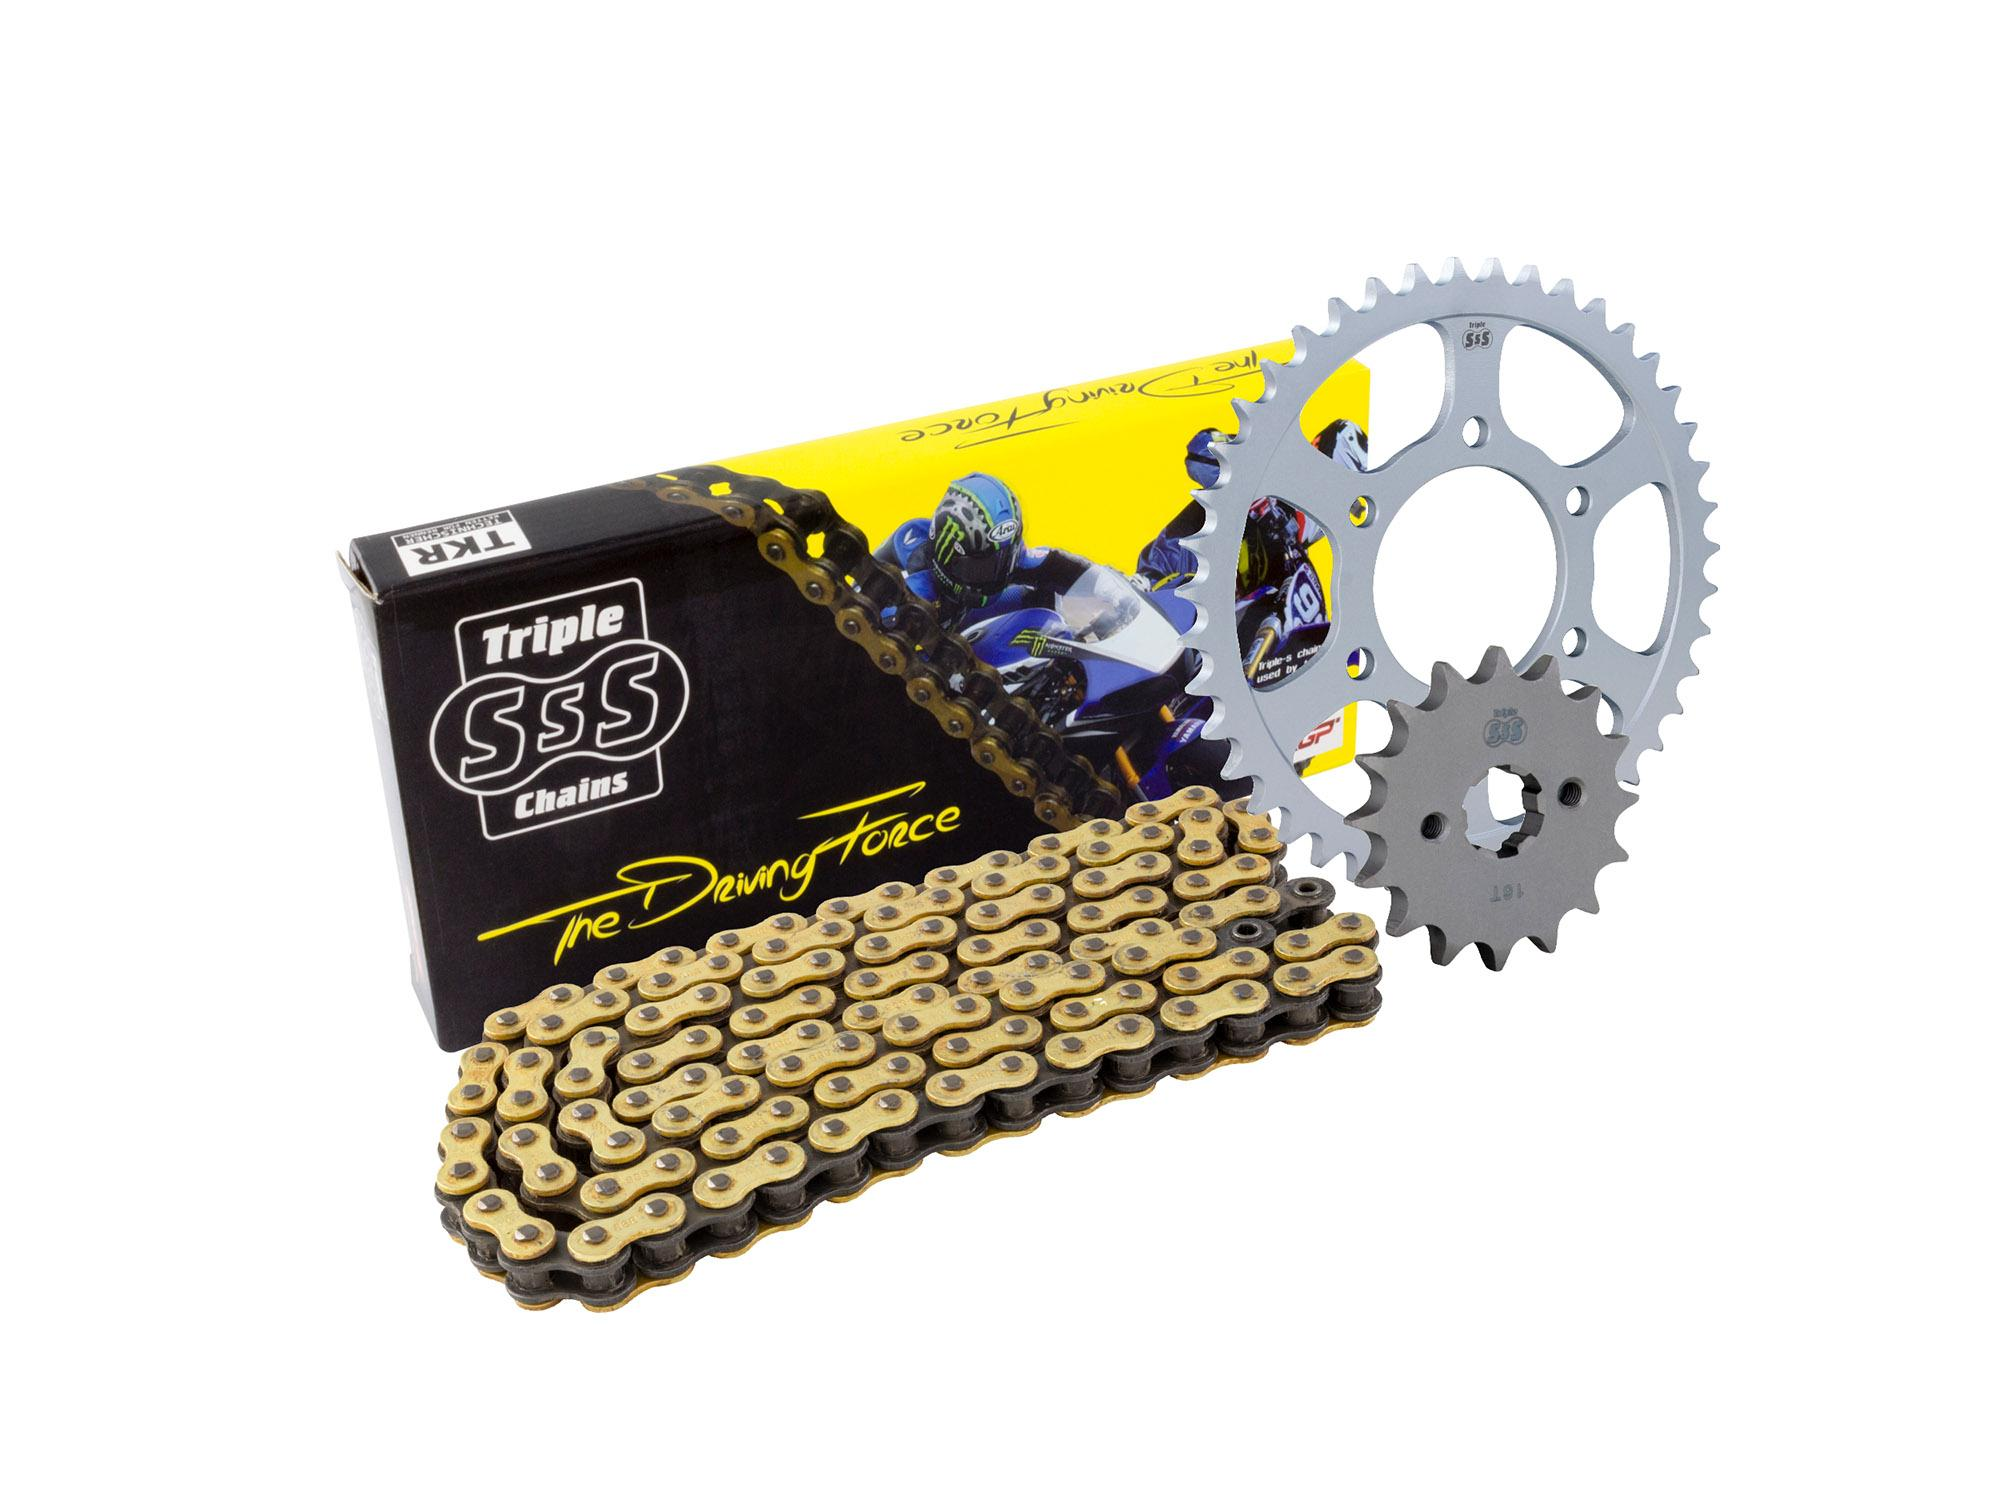 Honda CBR1000 FT/FV/FW/FX/FY 96-00 Chain & Sprocket Kit: 17T Front, 41T Rear, HD O-Ring Gold Chain 530H 114Link